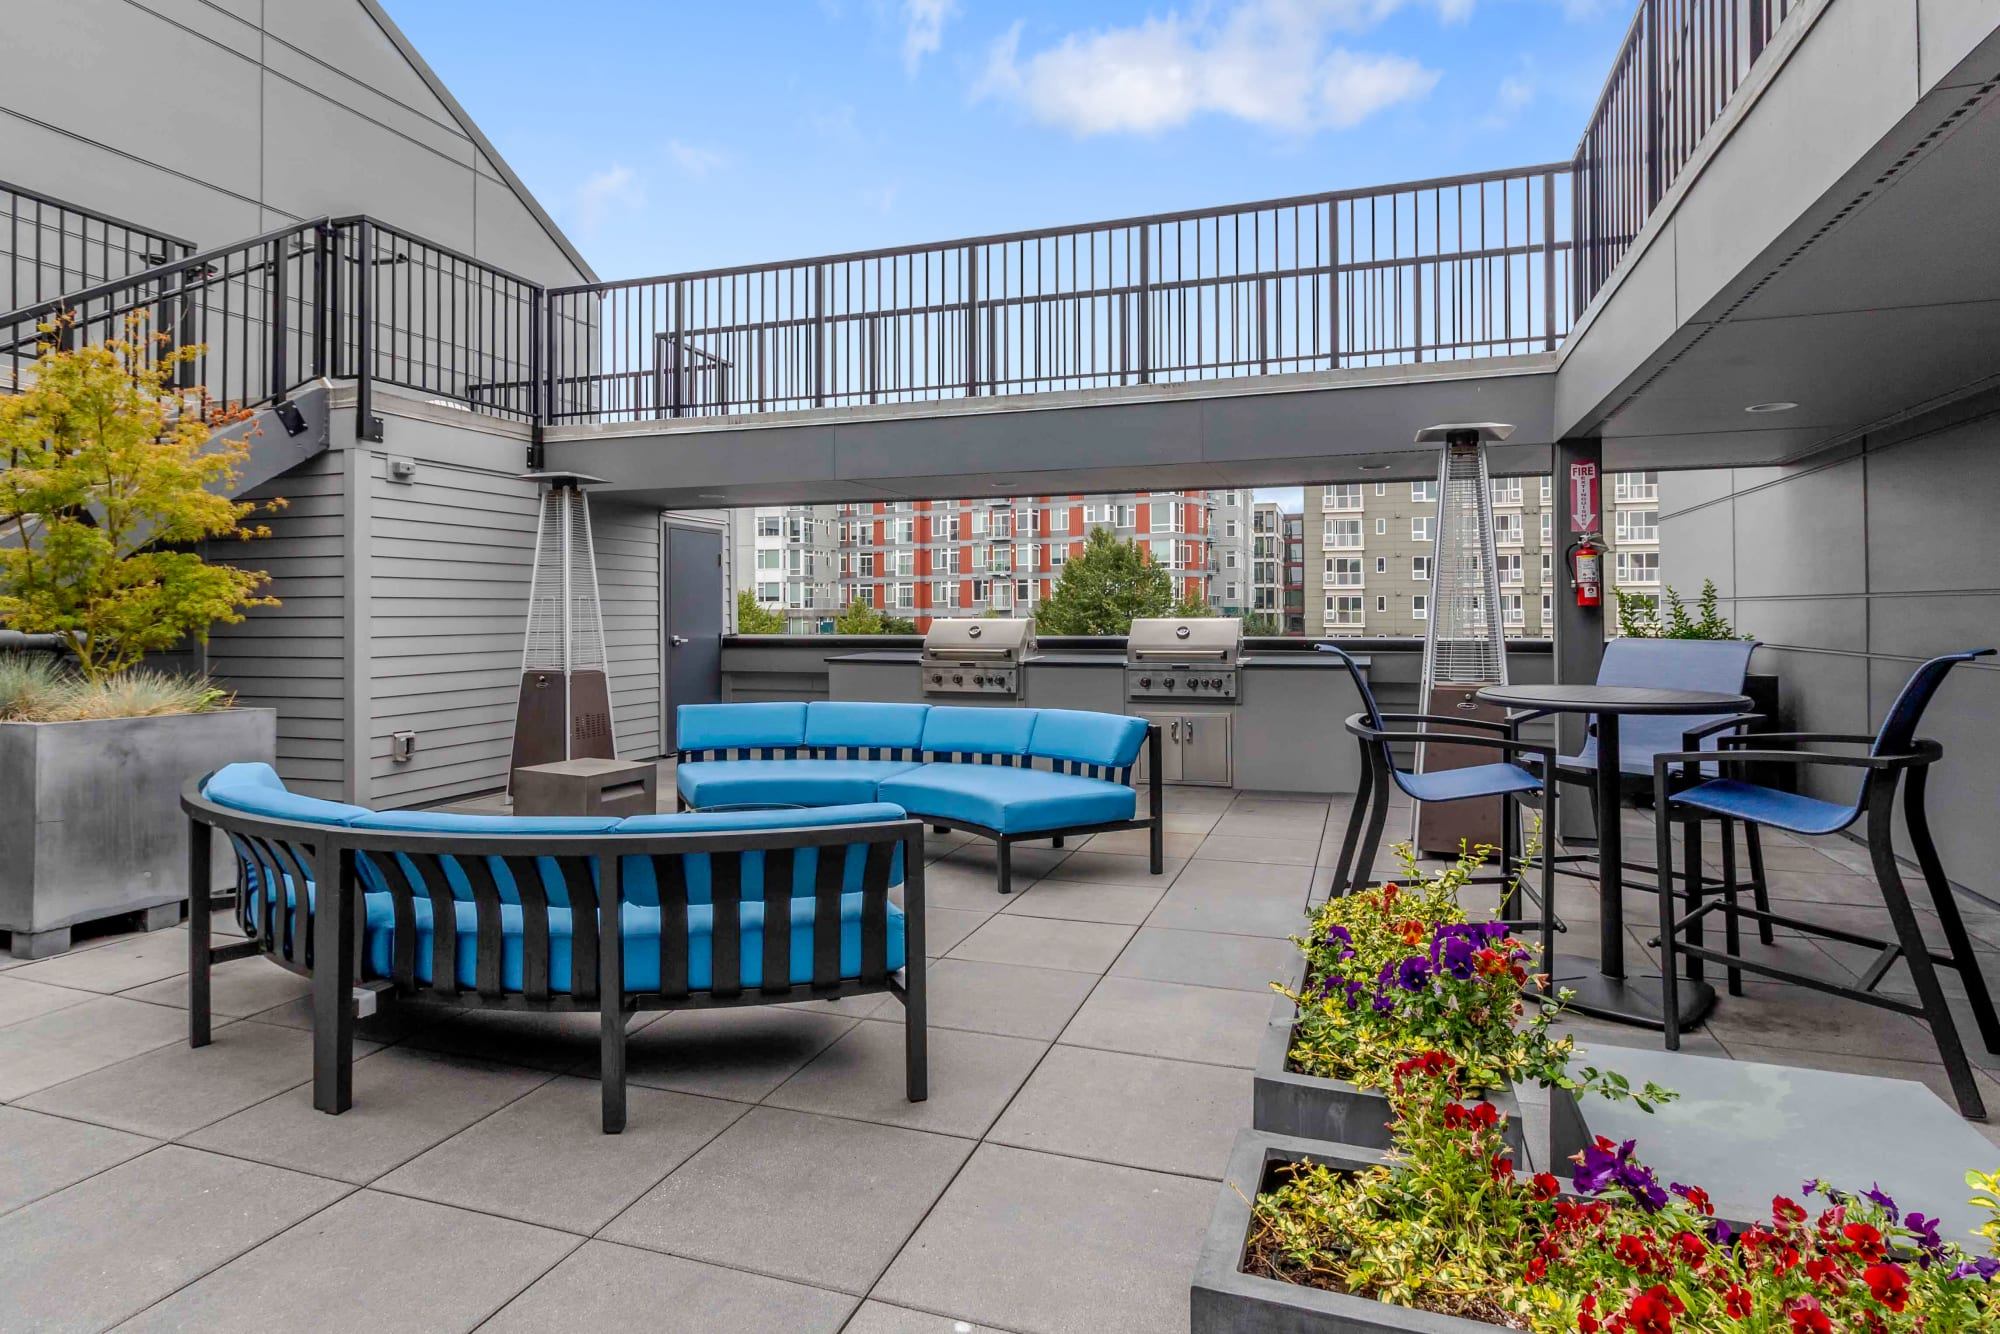 The community courtyard and barbecue stations at Elan 41 Apartments in Seattle, Washington